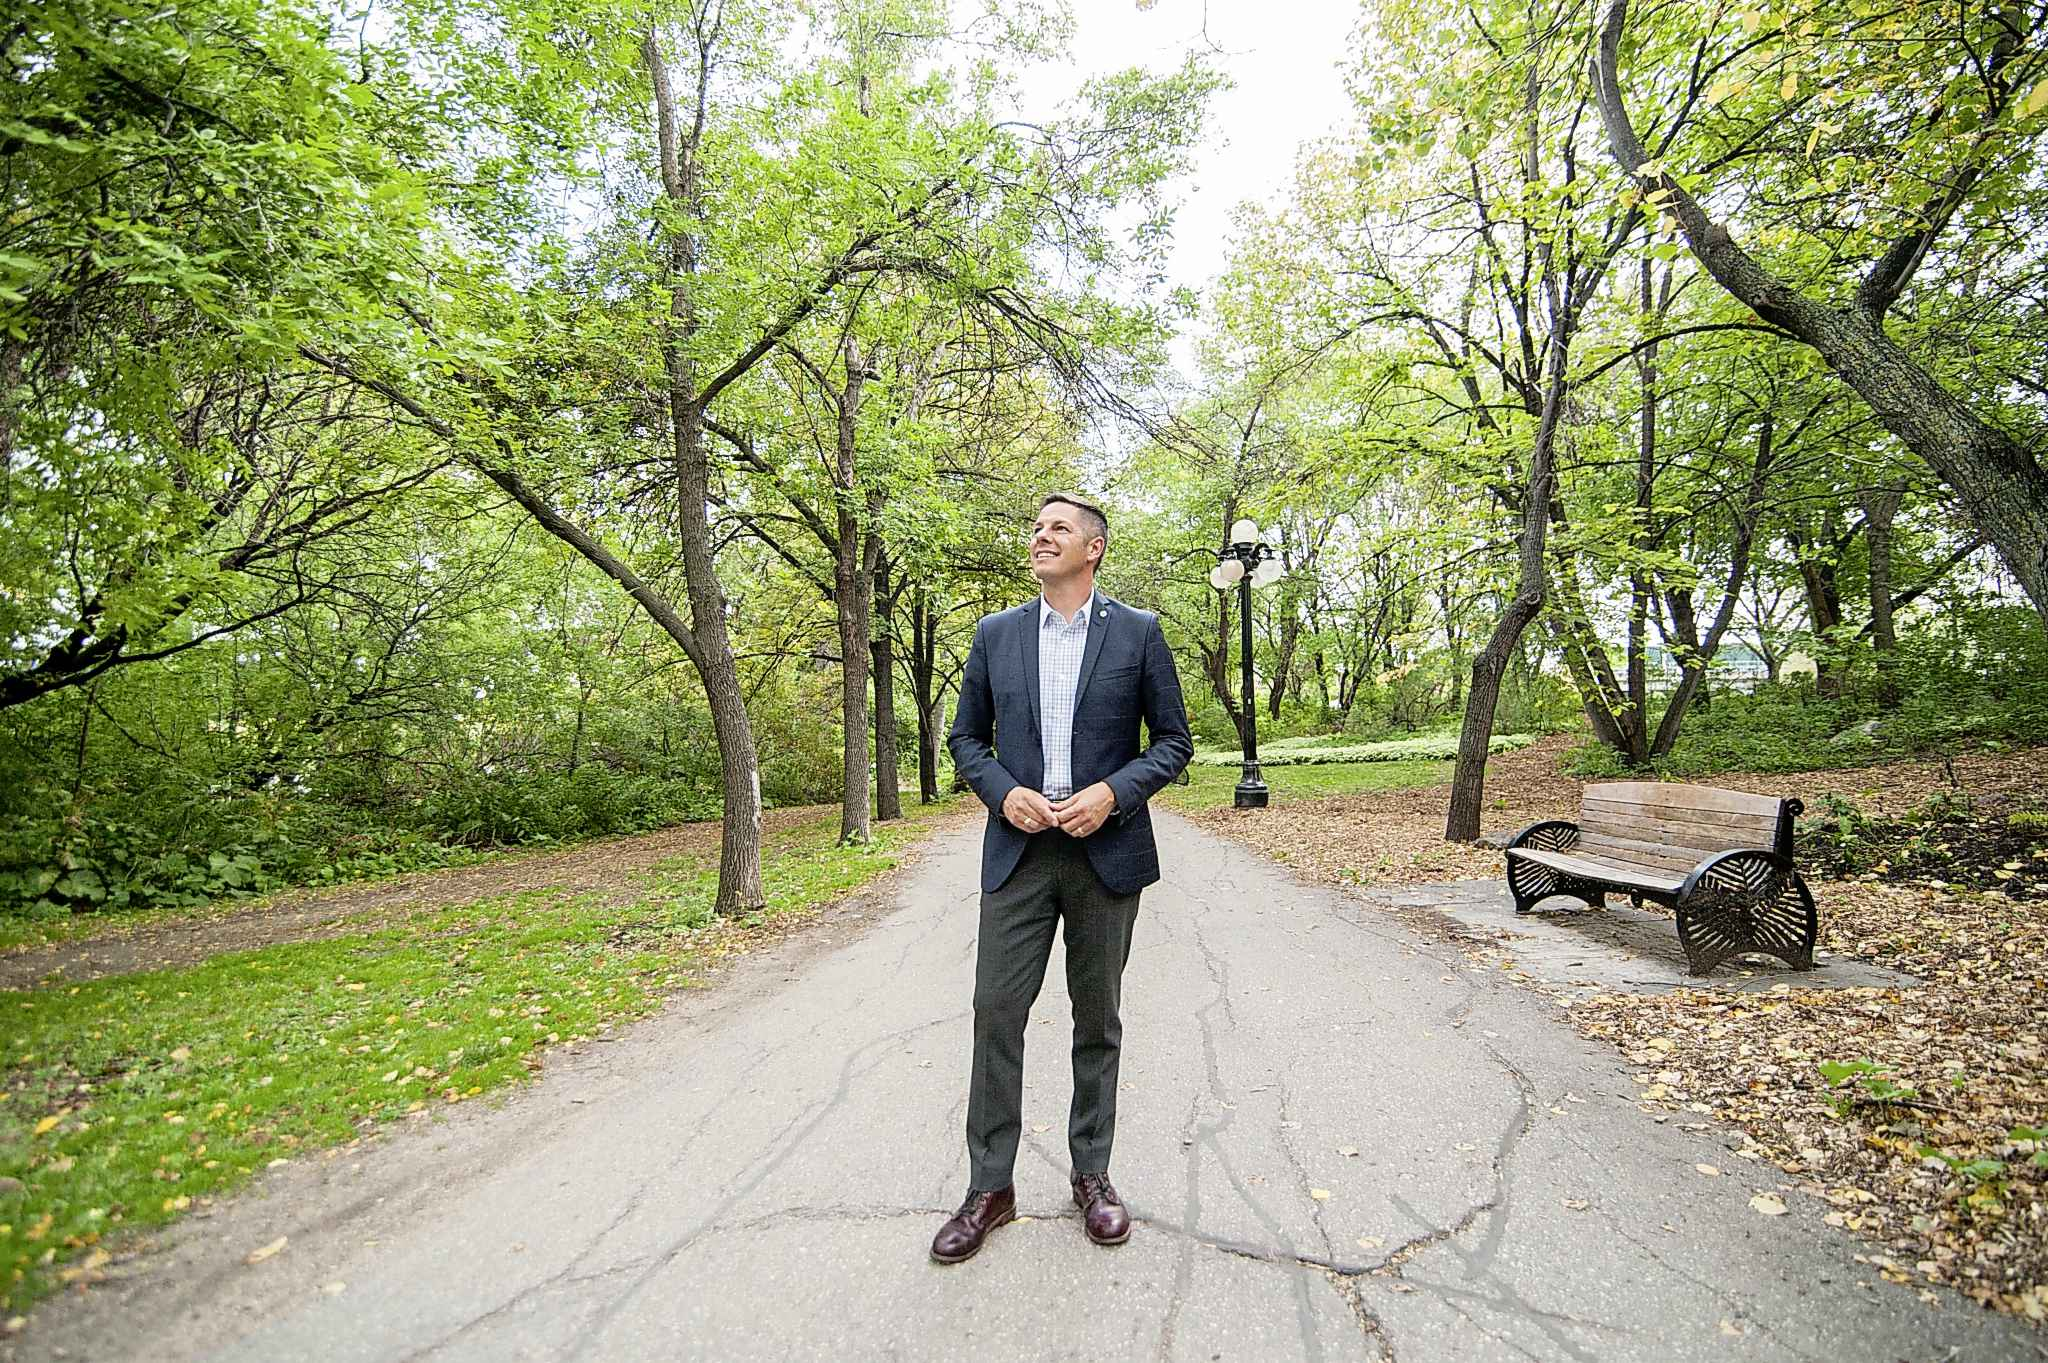 Mayor Brian Bowman announced the reforestation project in October, with a target to plant one million trees by 2040. The planting strategy  is expected to cost $43 million and require 50,000 new trees each year, a city report states. (Mike Sudoma / Free Press files)